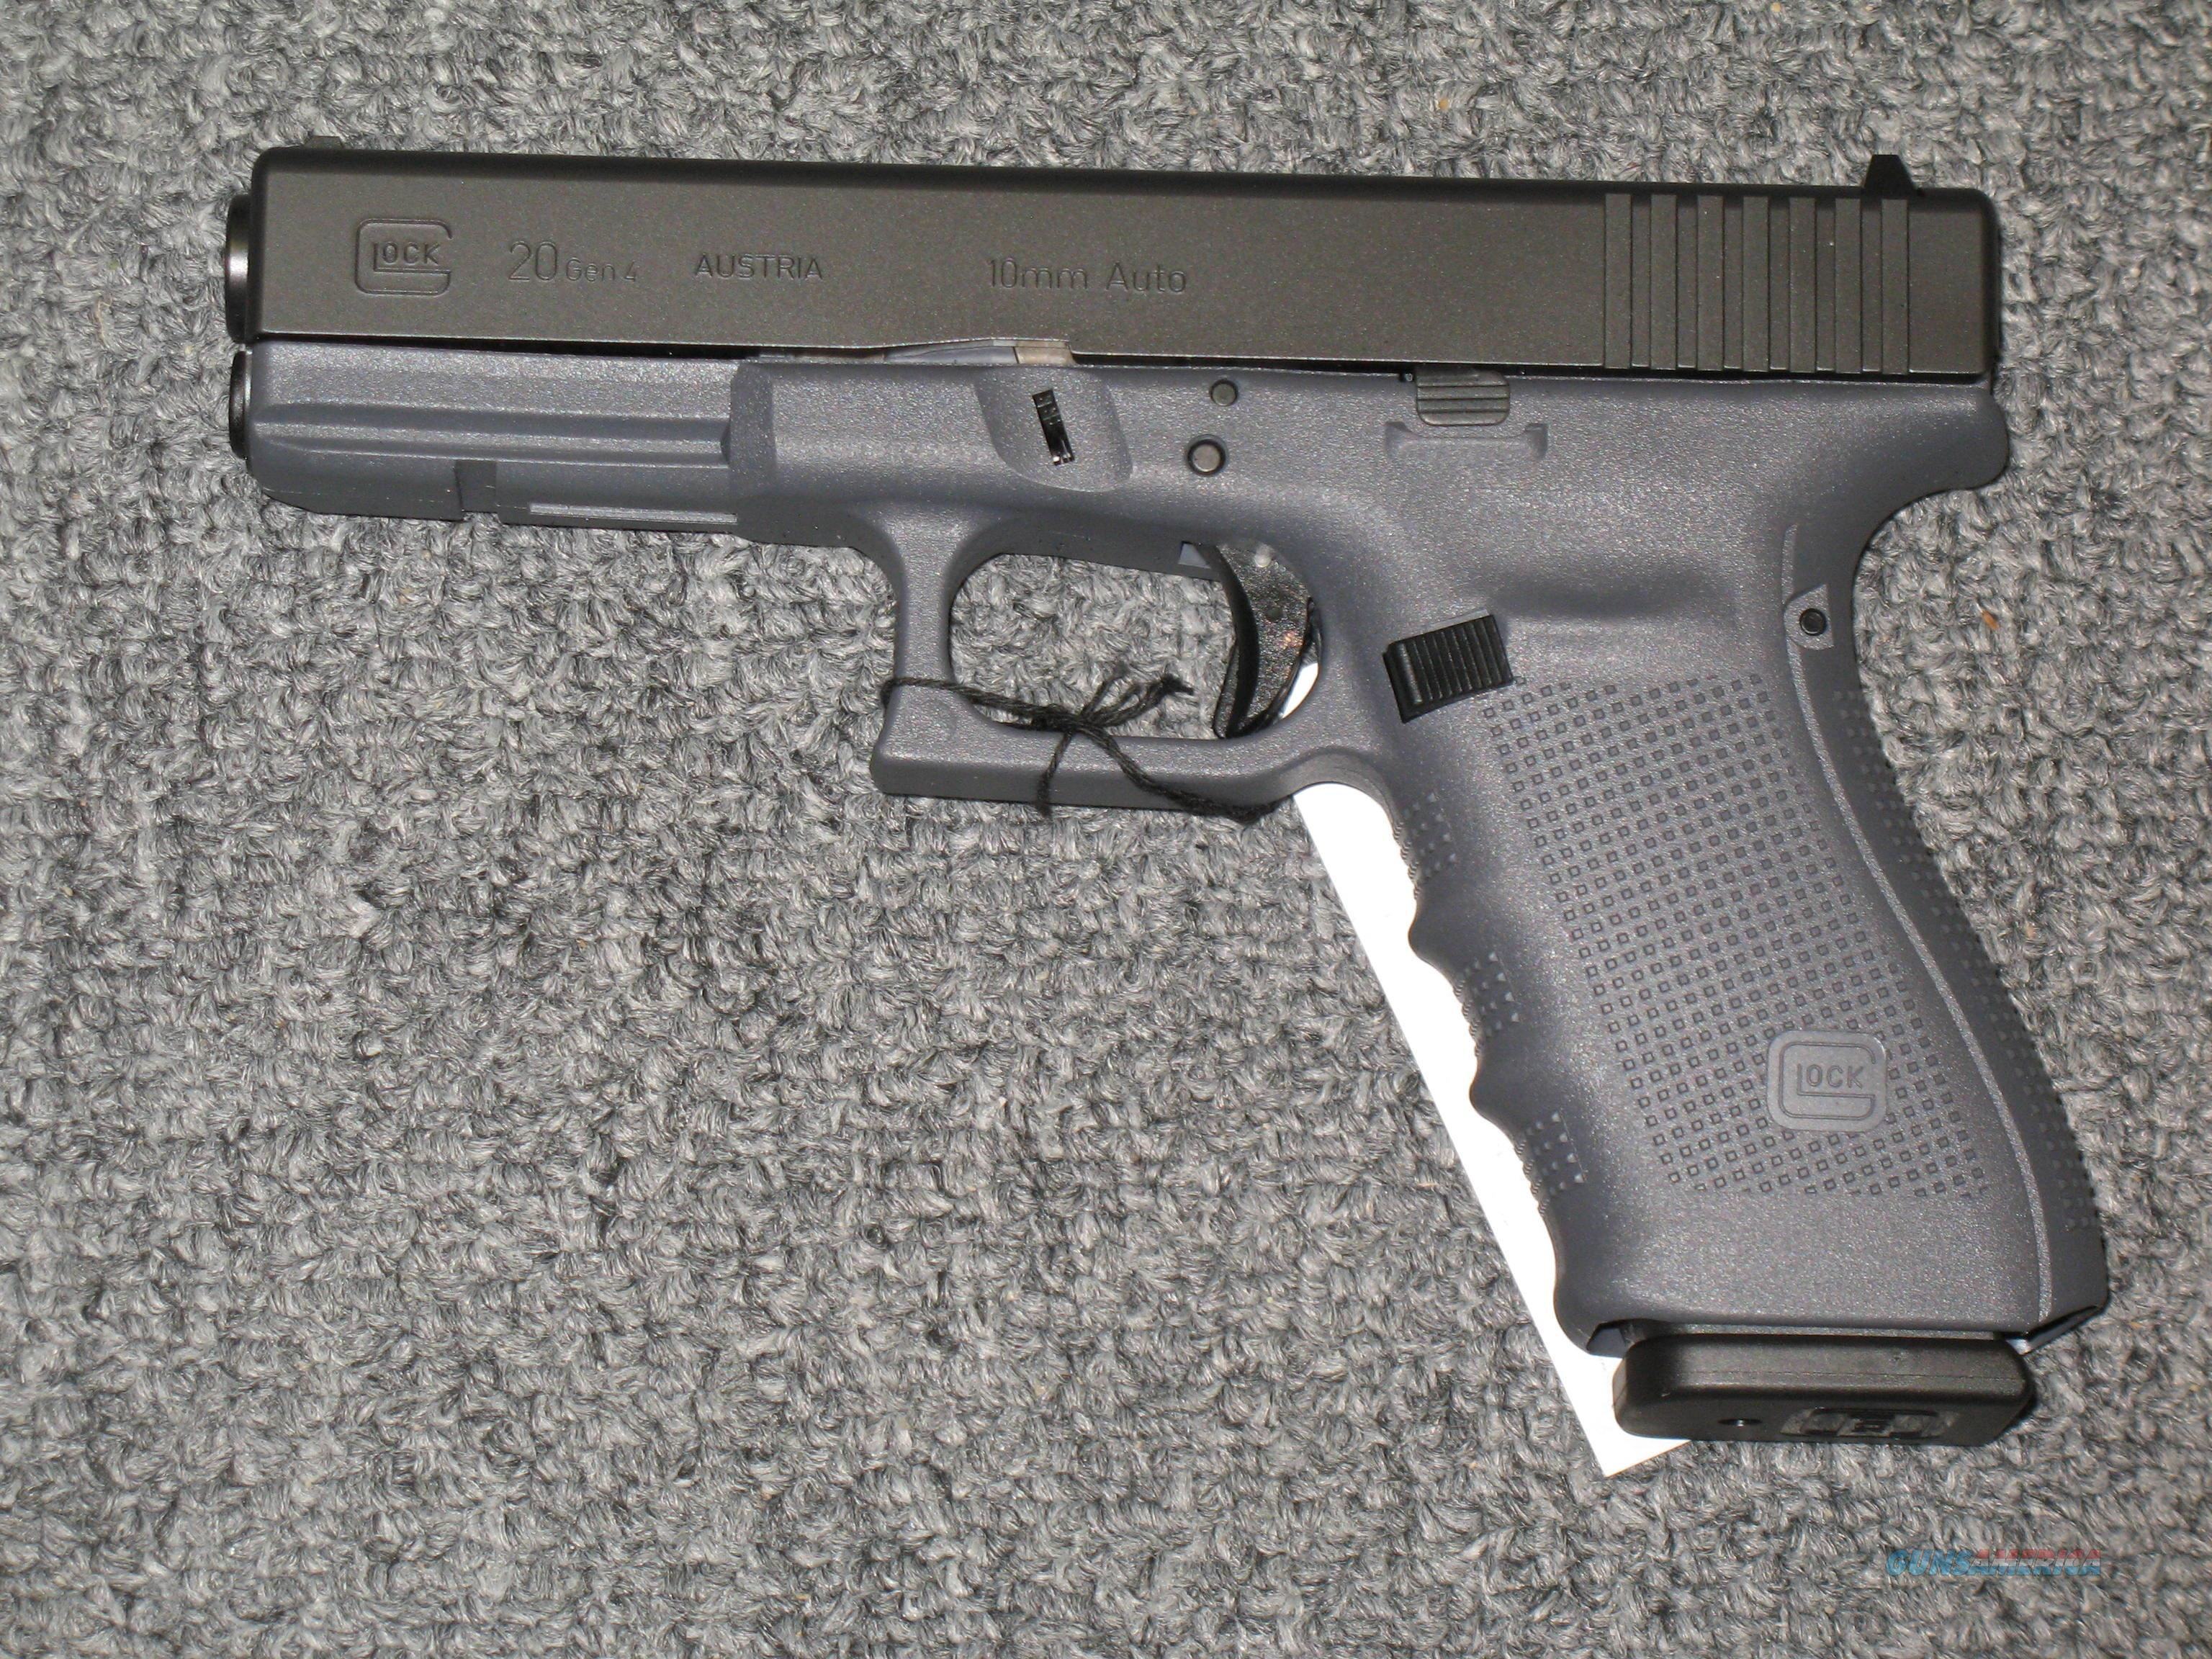 20 Gen 4 Special Edition with black & gray finish, three 15 rd. mags.  Guns > Pistols > Glock Pistols > 20/21